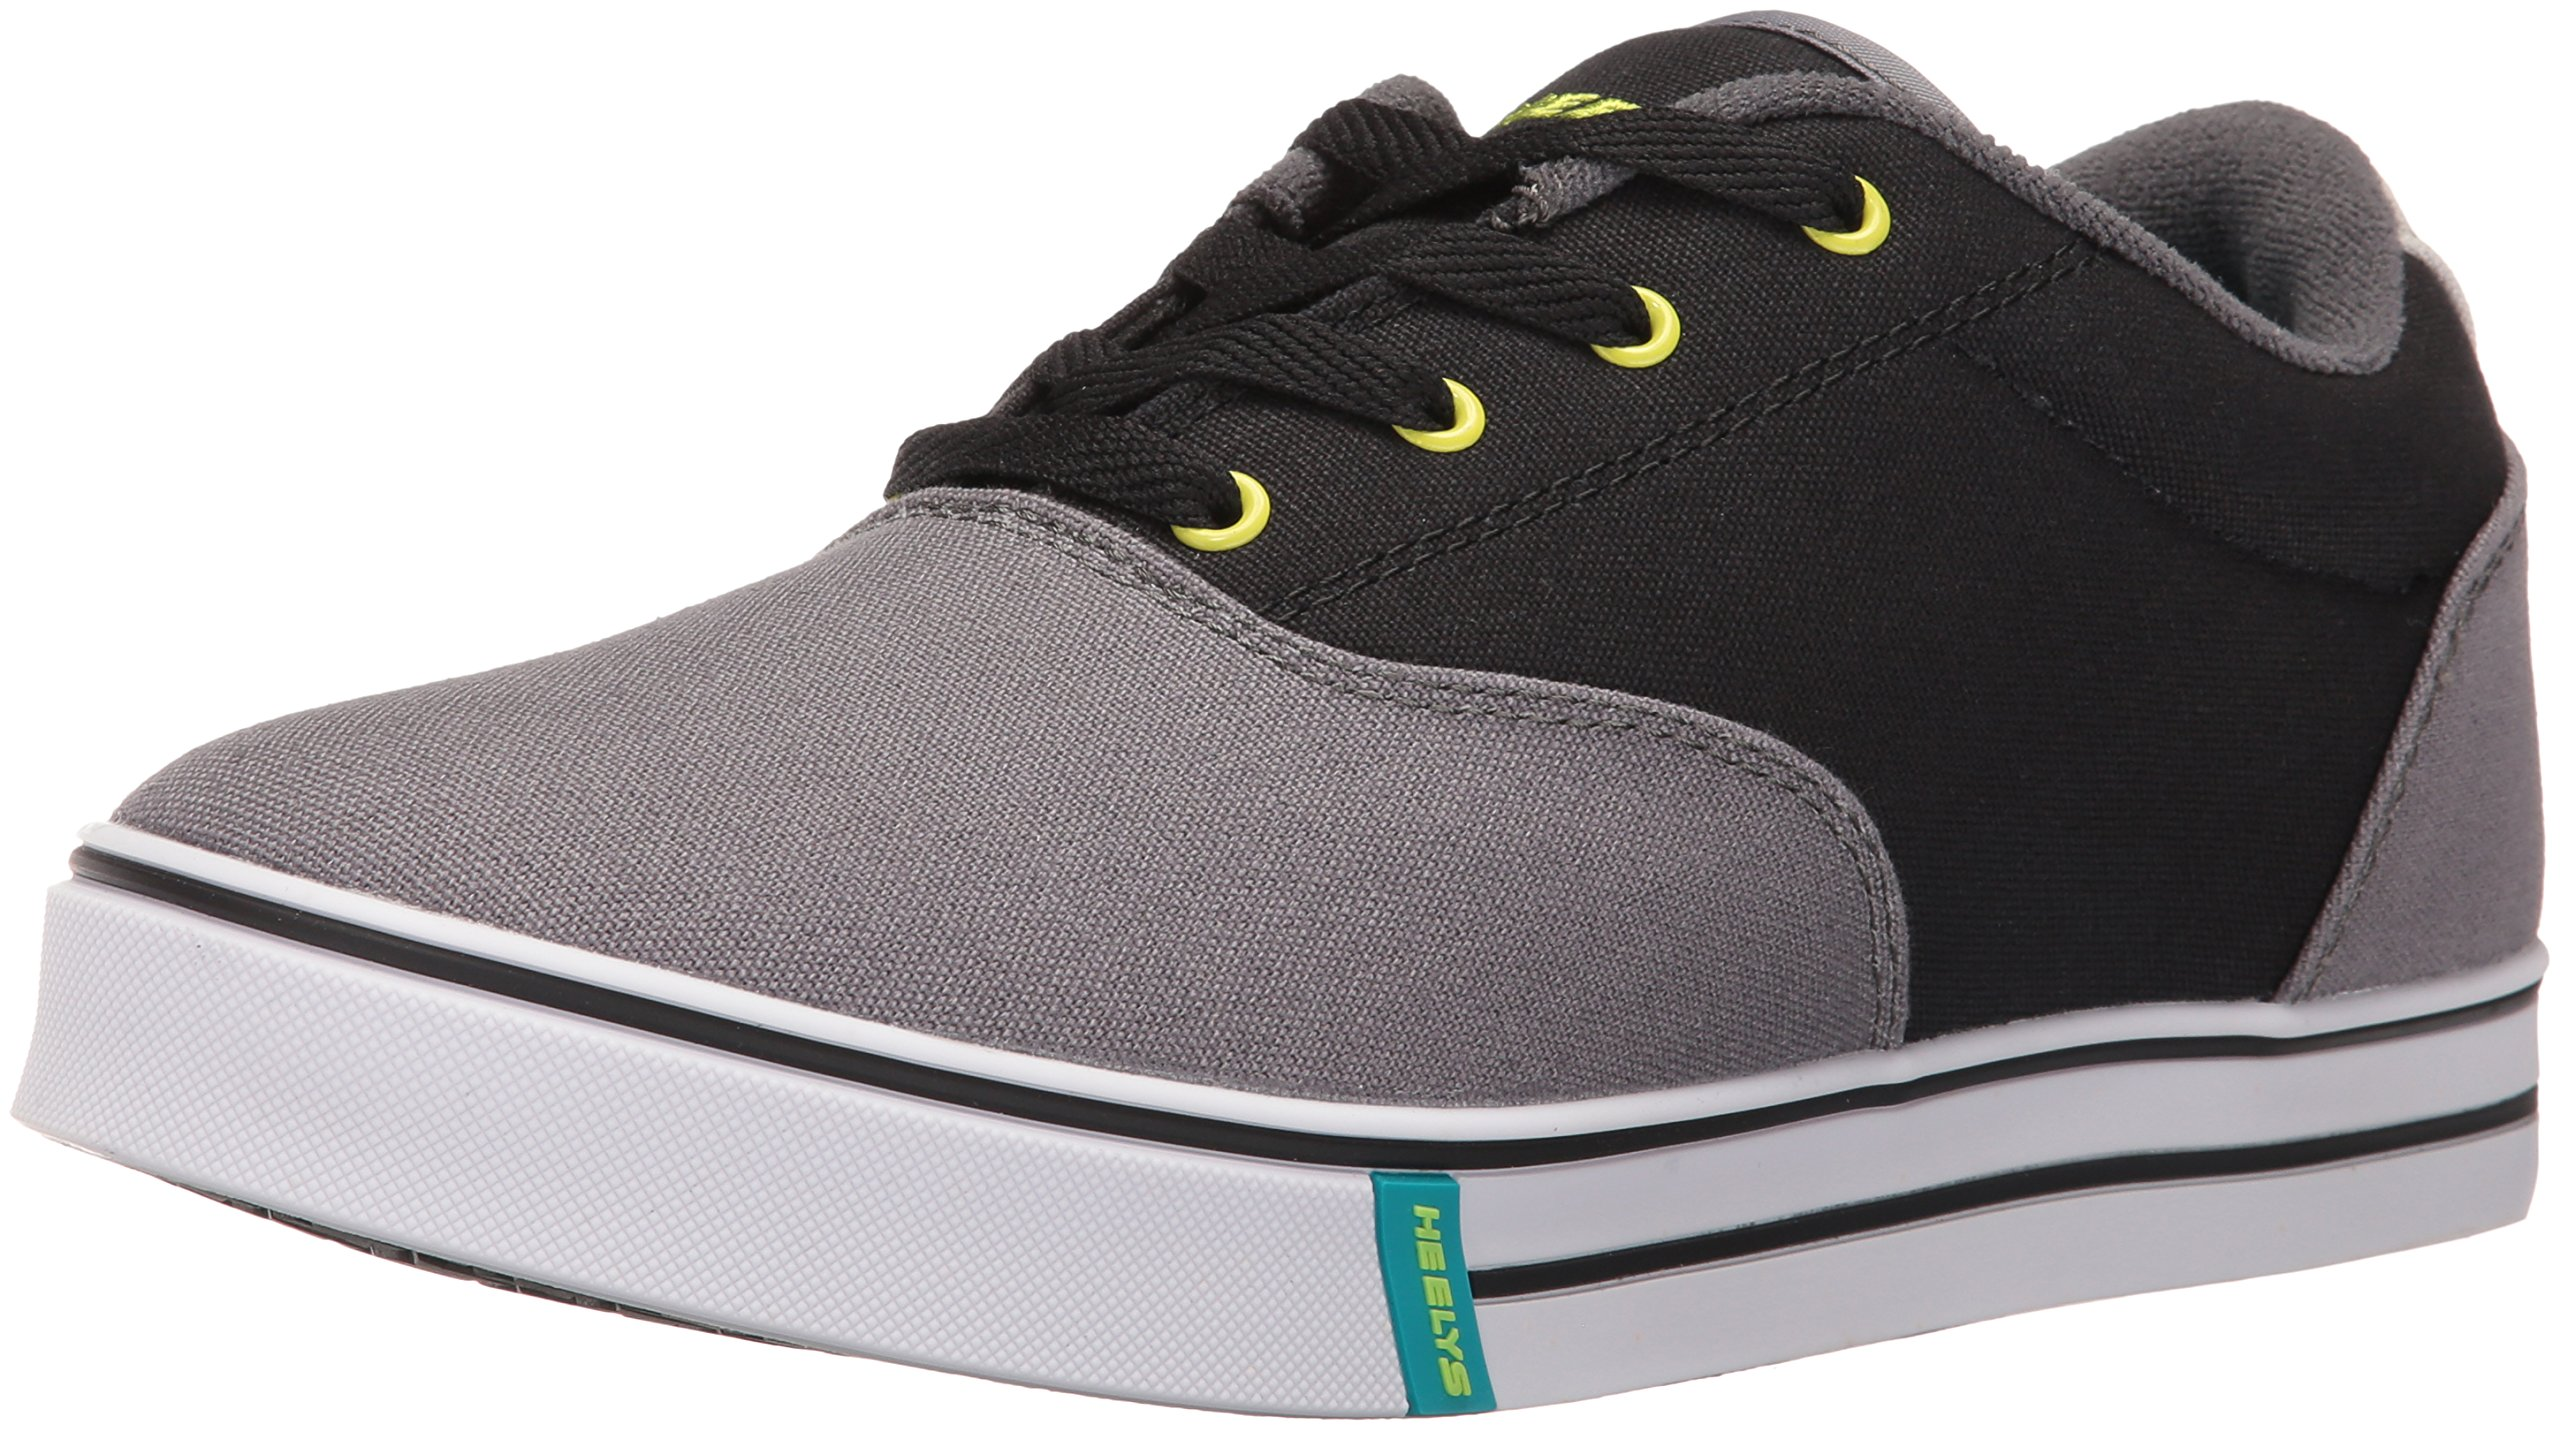 Heelys Men's Launch Fashion Sneaker Charcoal/Black/Lime 10 M US by Heelys (Image #1)